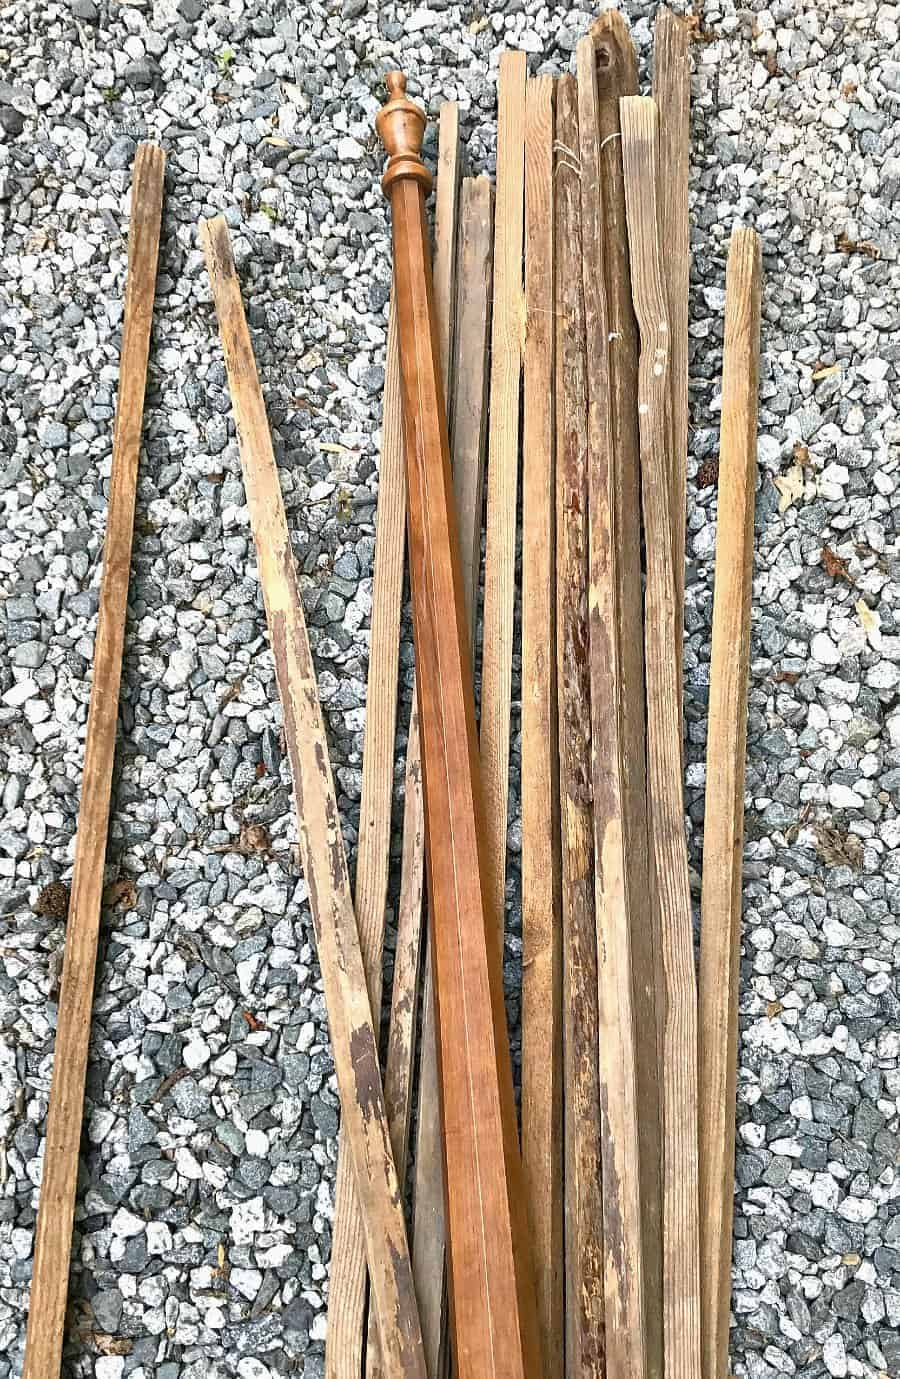 scrap wood tobacco sticks laying on the stone driveway